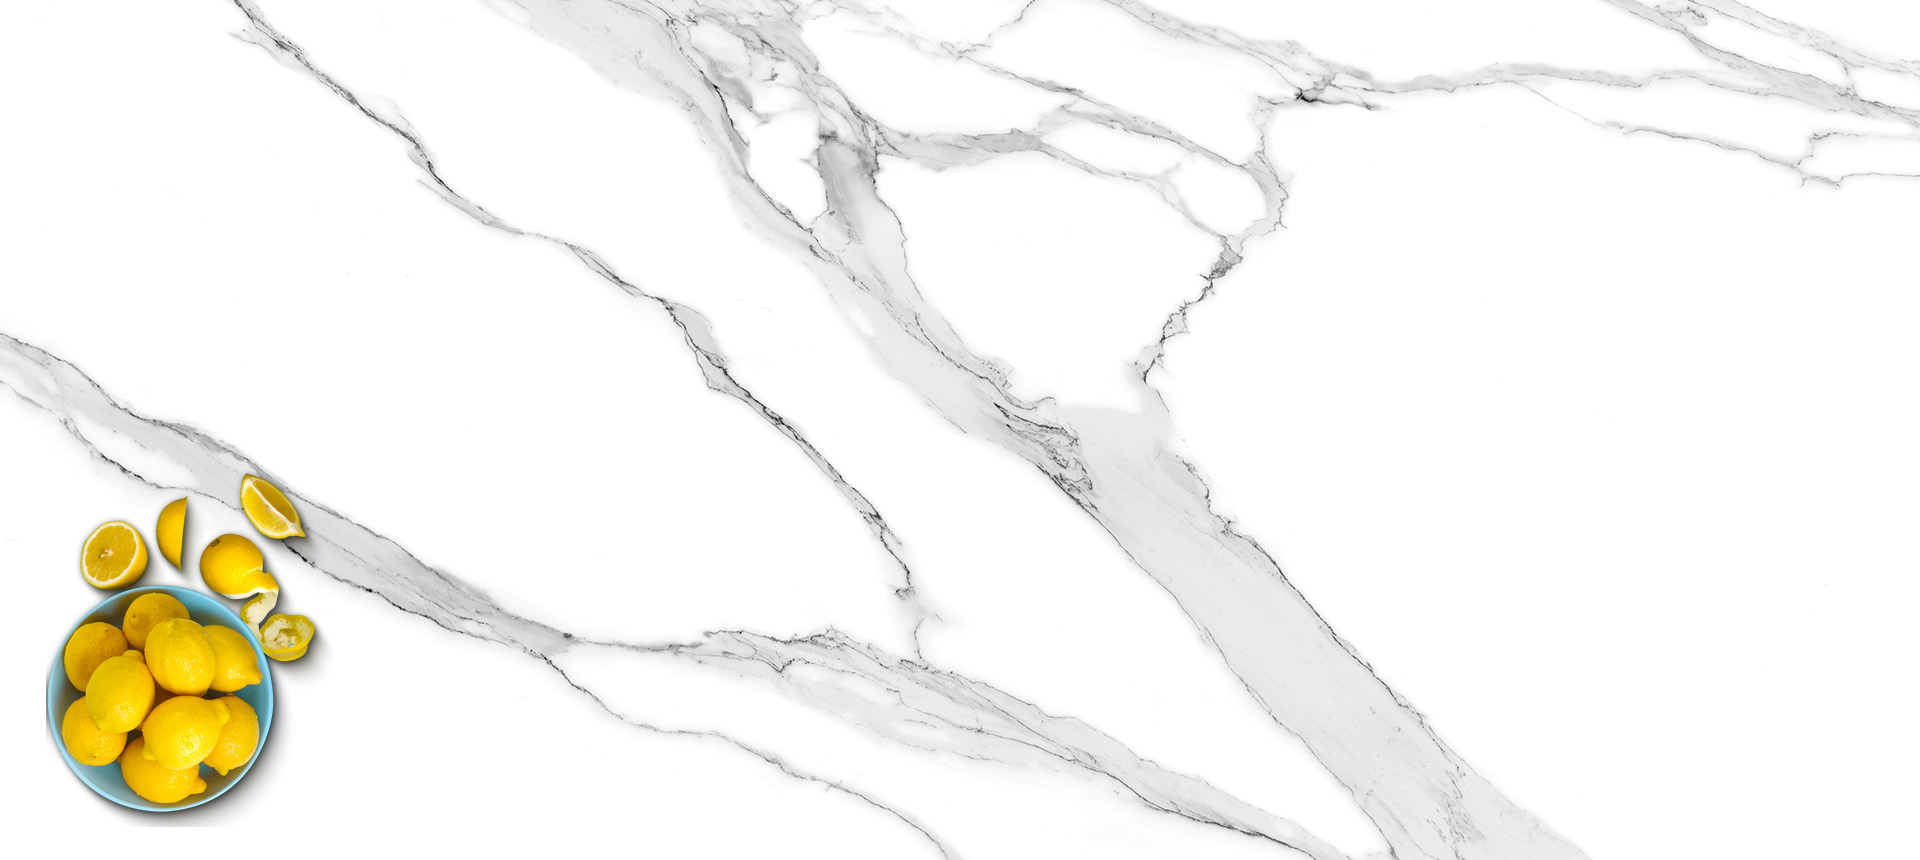 1020 RIGATO WHITE-F1_Full Slab_With Material_1600x800_1920x860